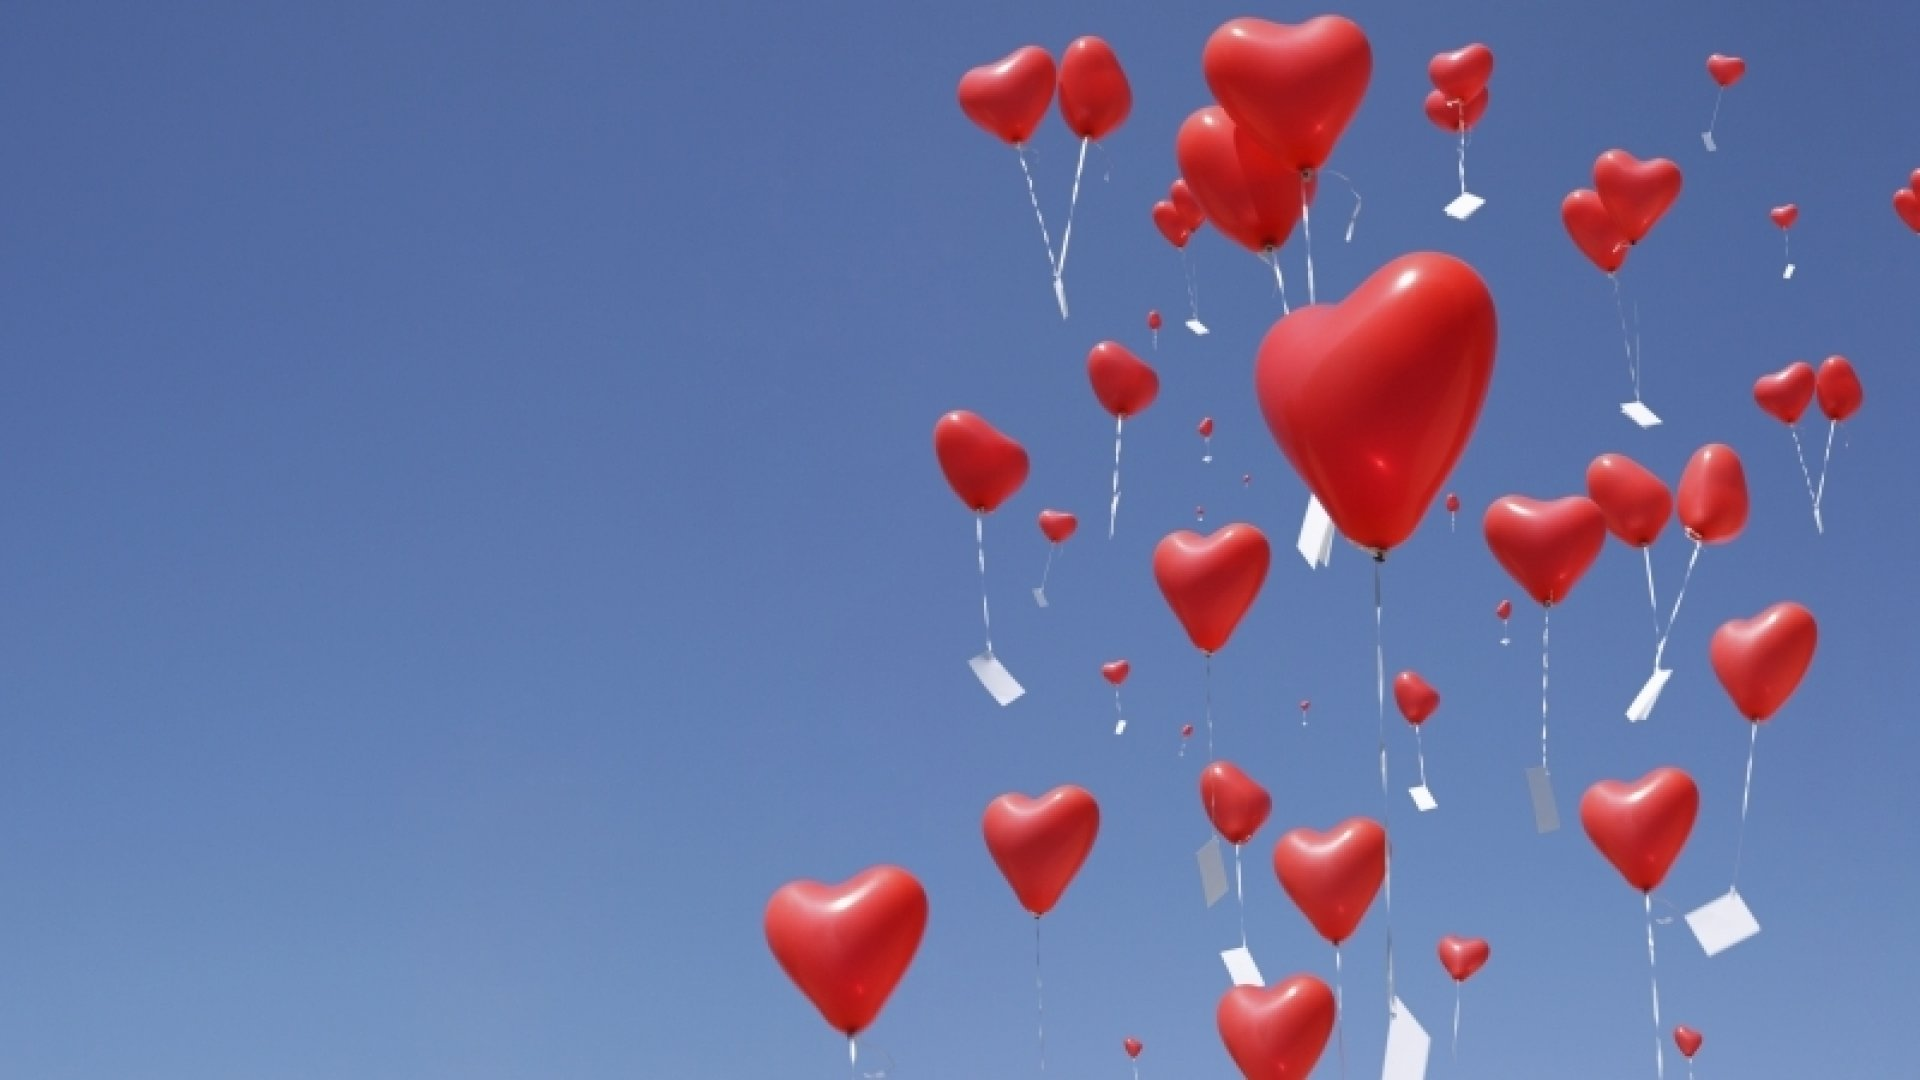 7 Keys to Leading With Your Heart